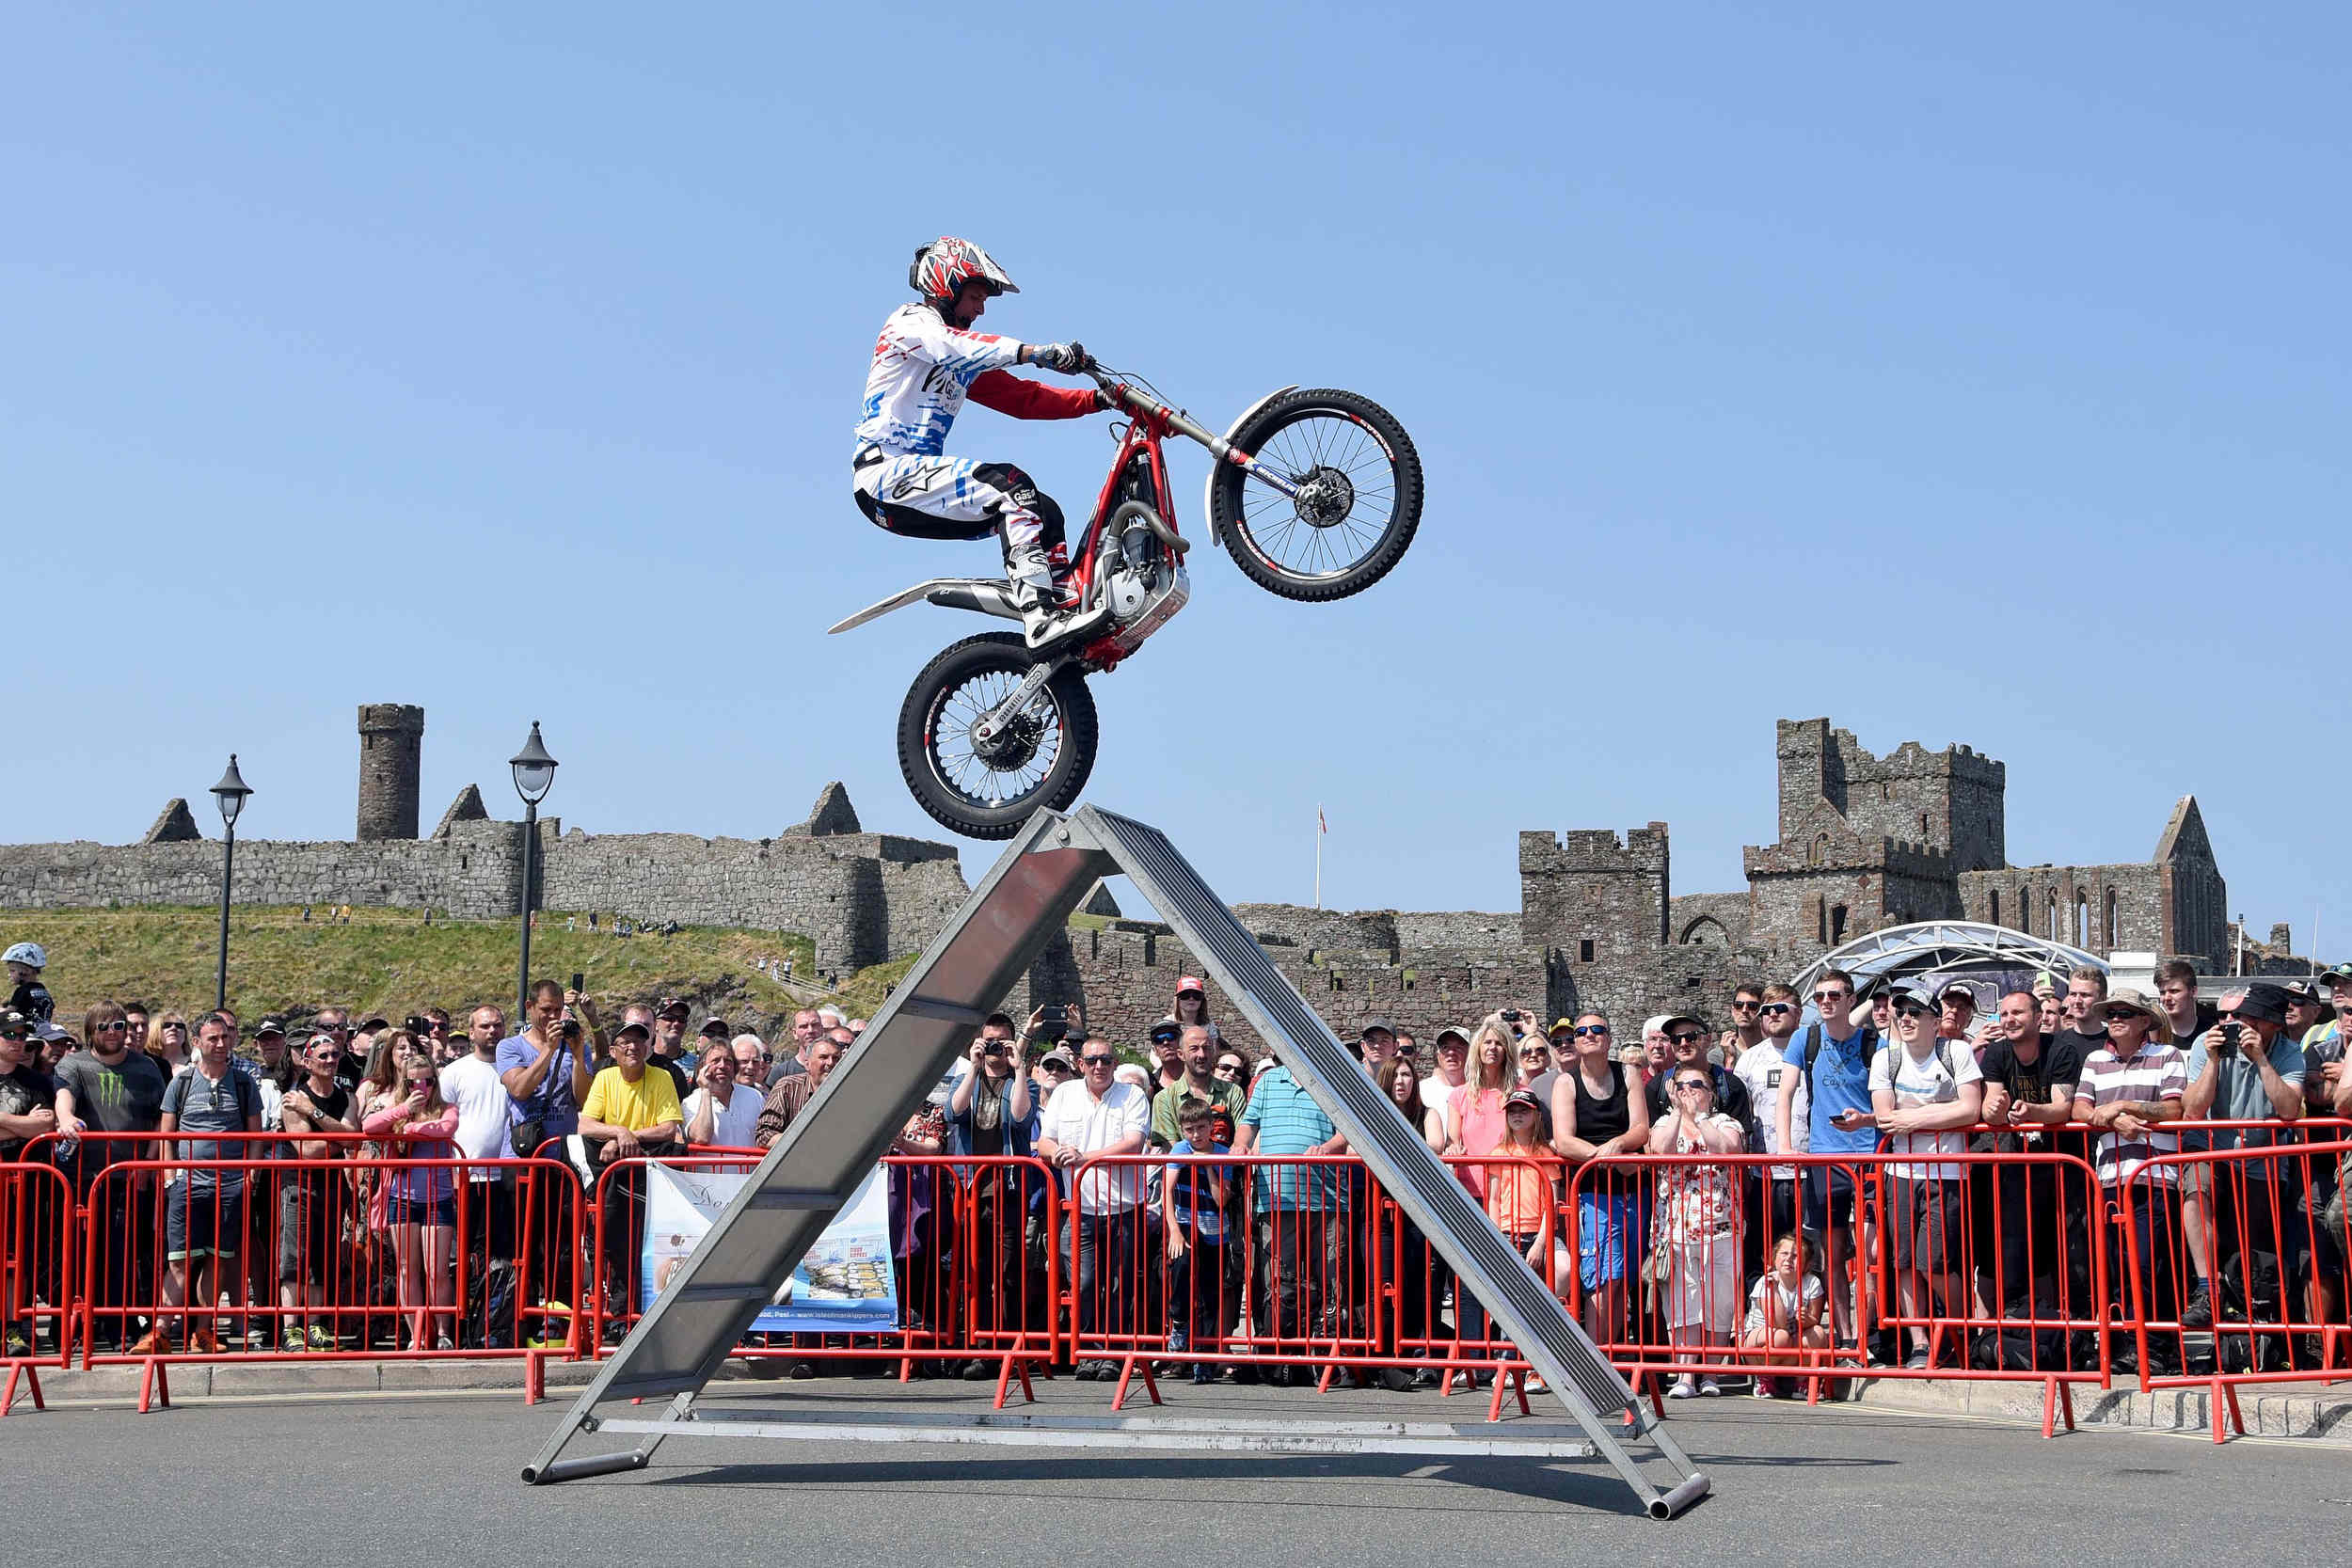 Steve Colley's stunt show at Peel TT Day